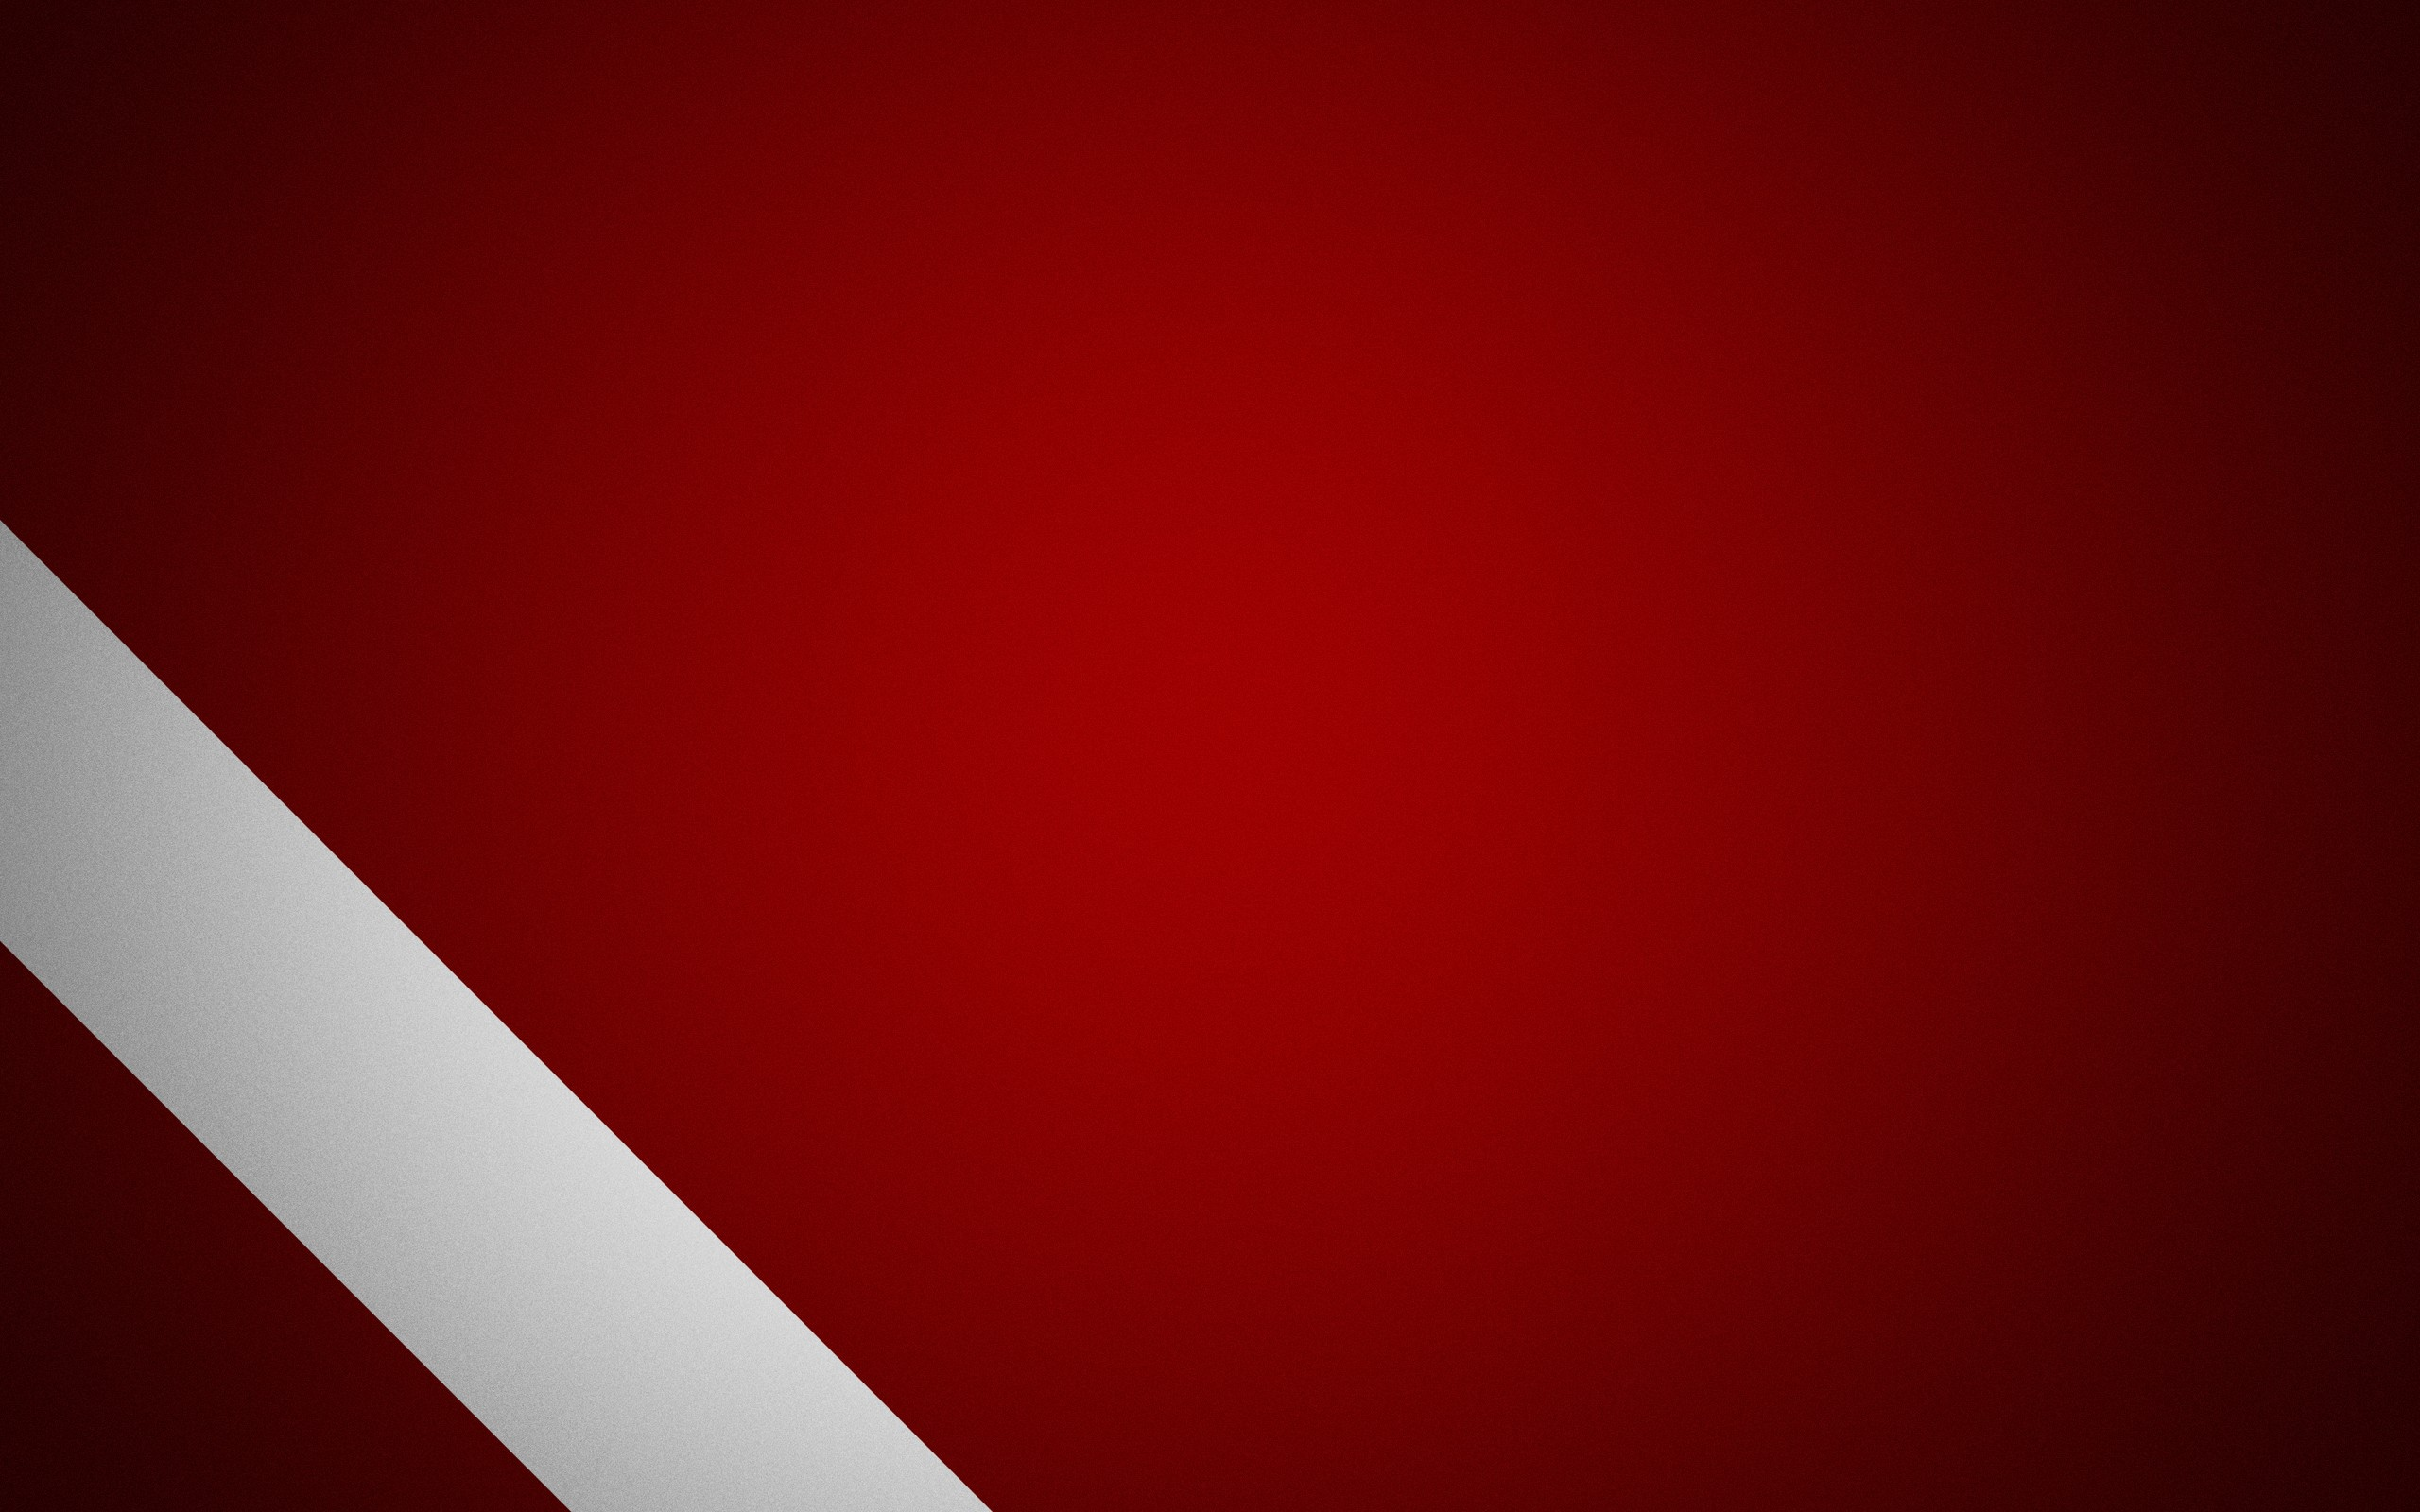 1600 jpeg 558kB 2560x1600 White and Red desktop PC and Mac wallpaper 2560x1600